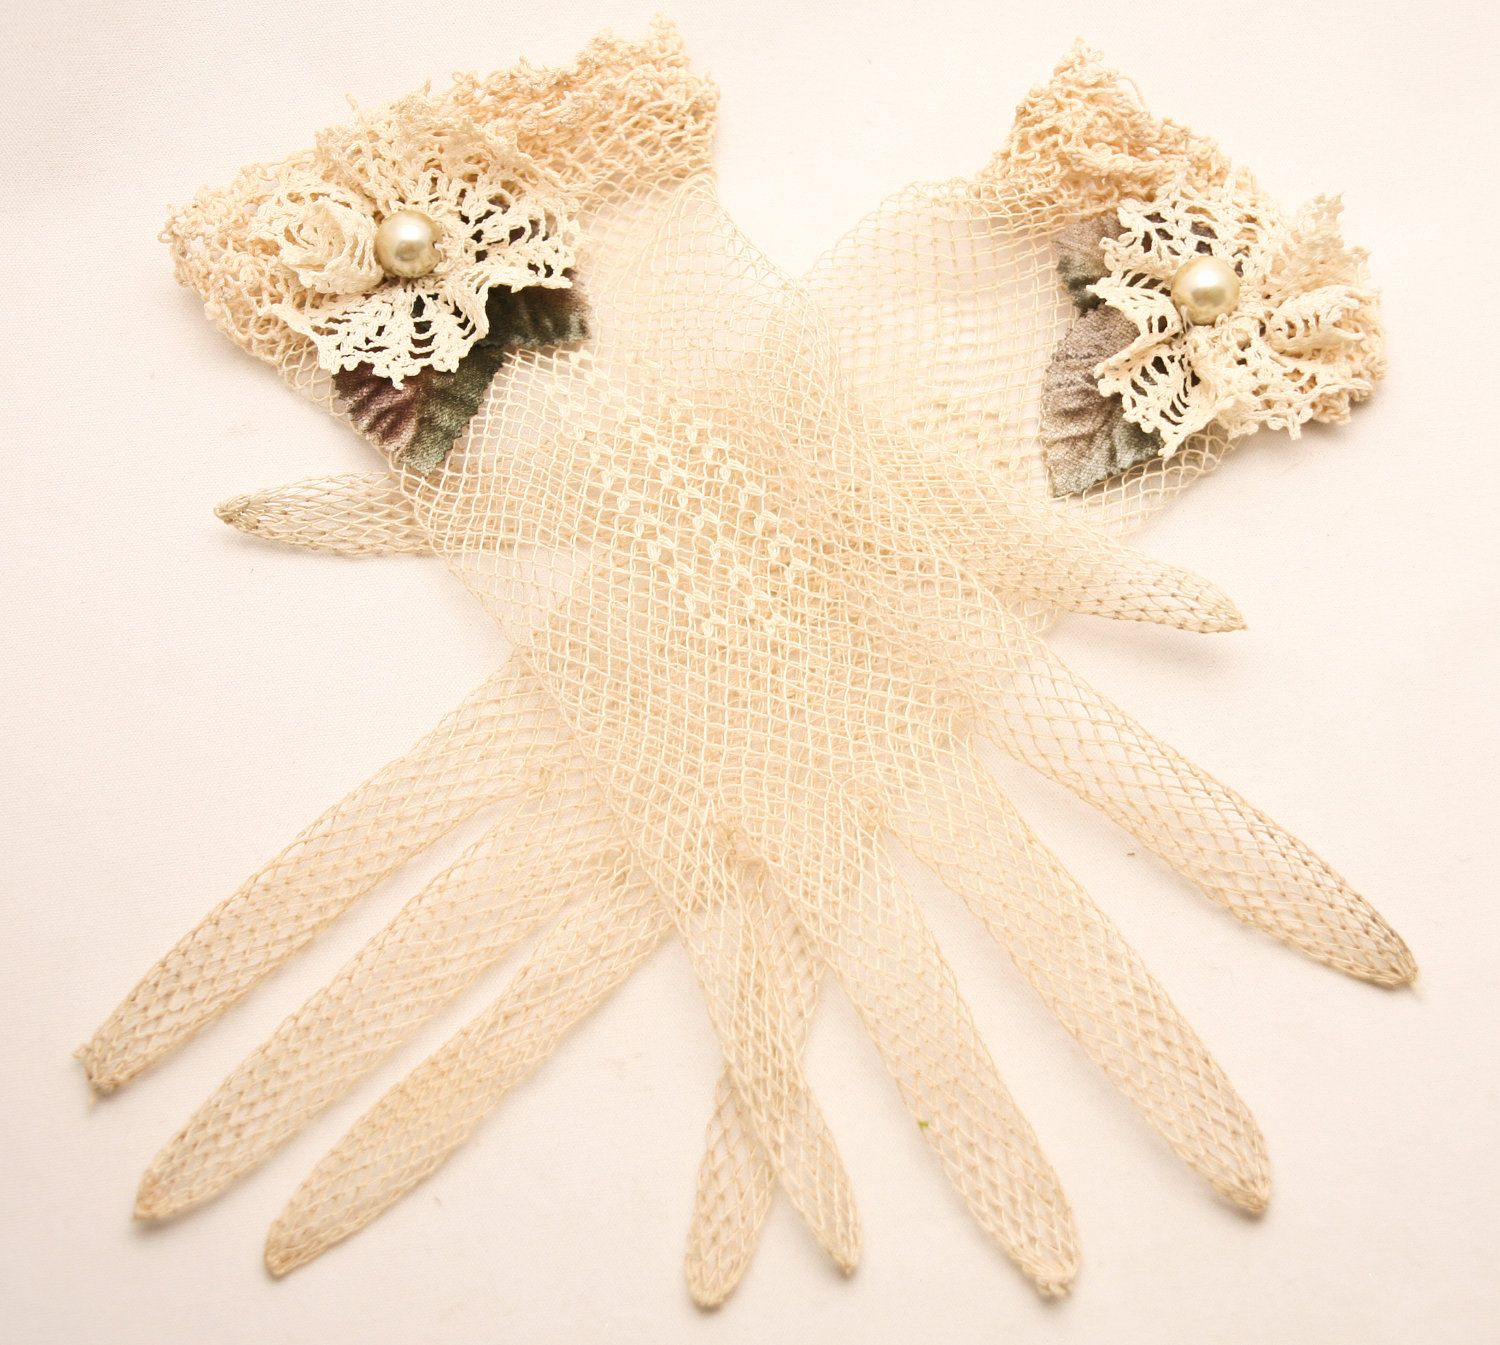 Vintage lace gloves with vintage lace flowers and leaves added. $55.00, via Etsy.